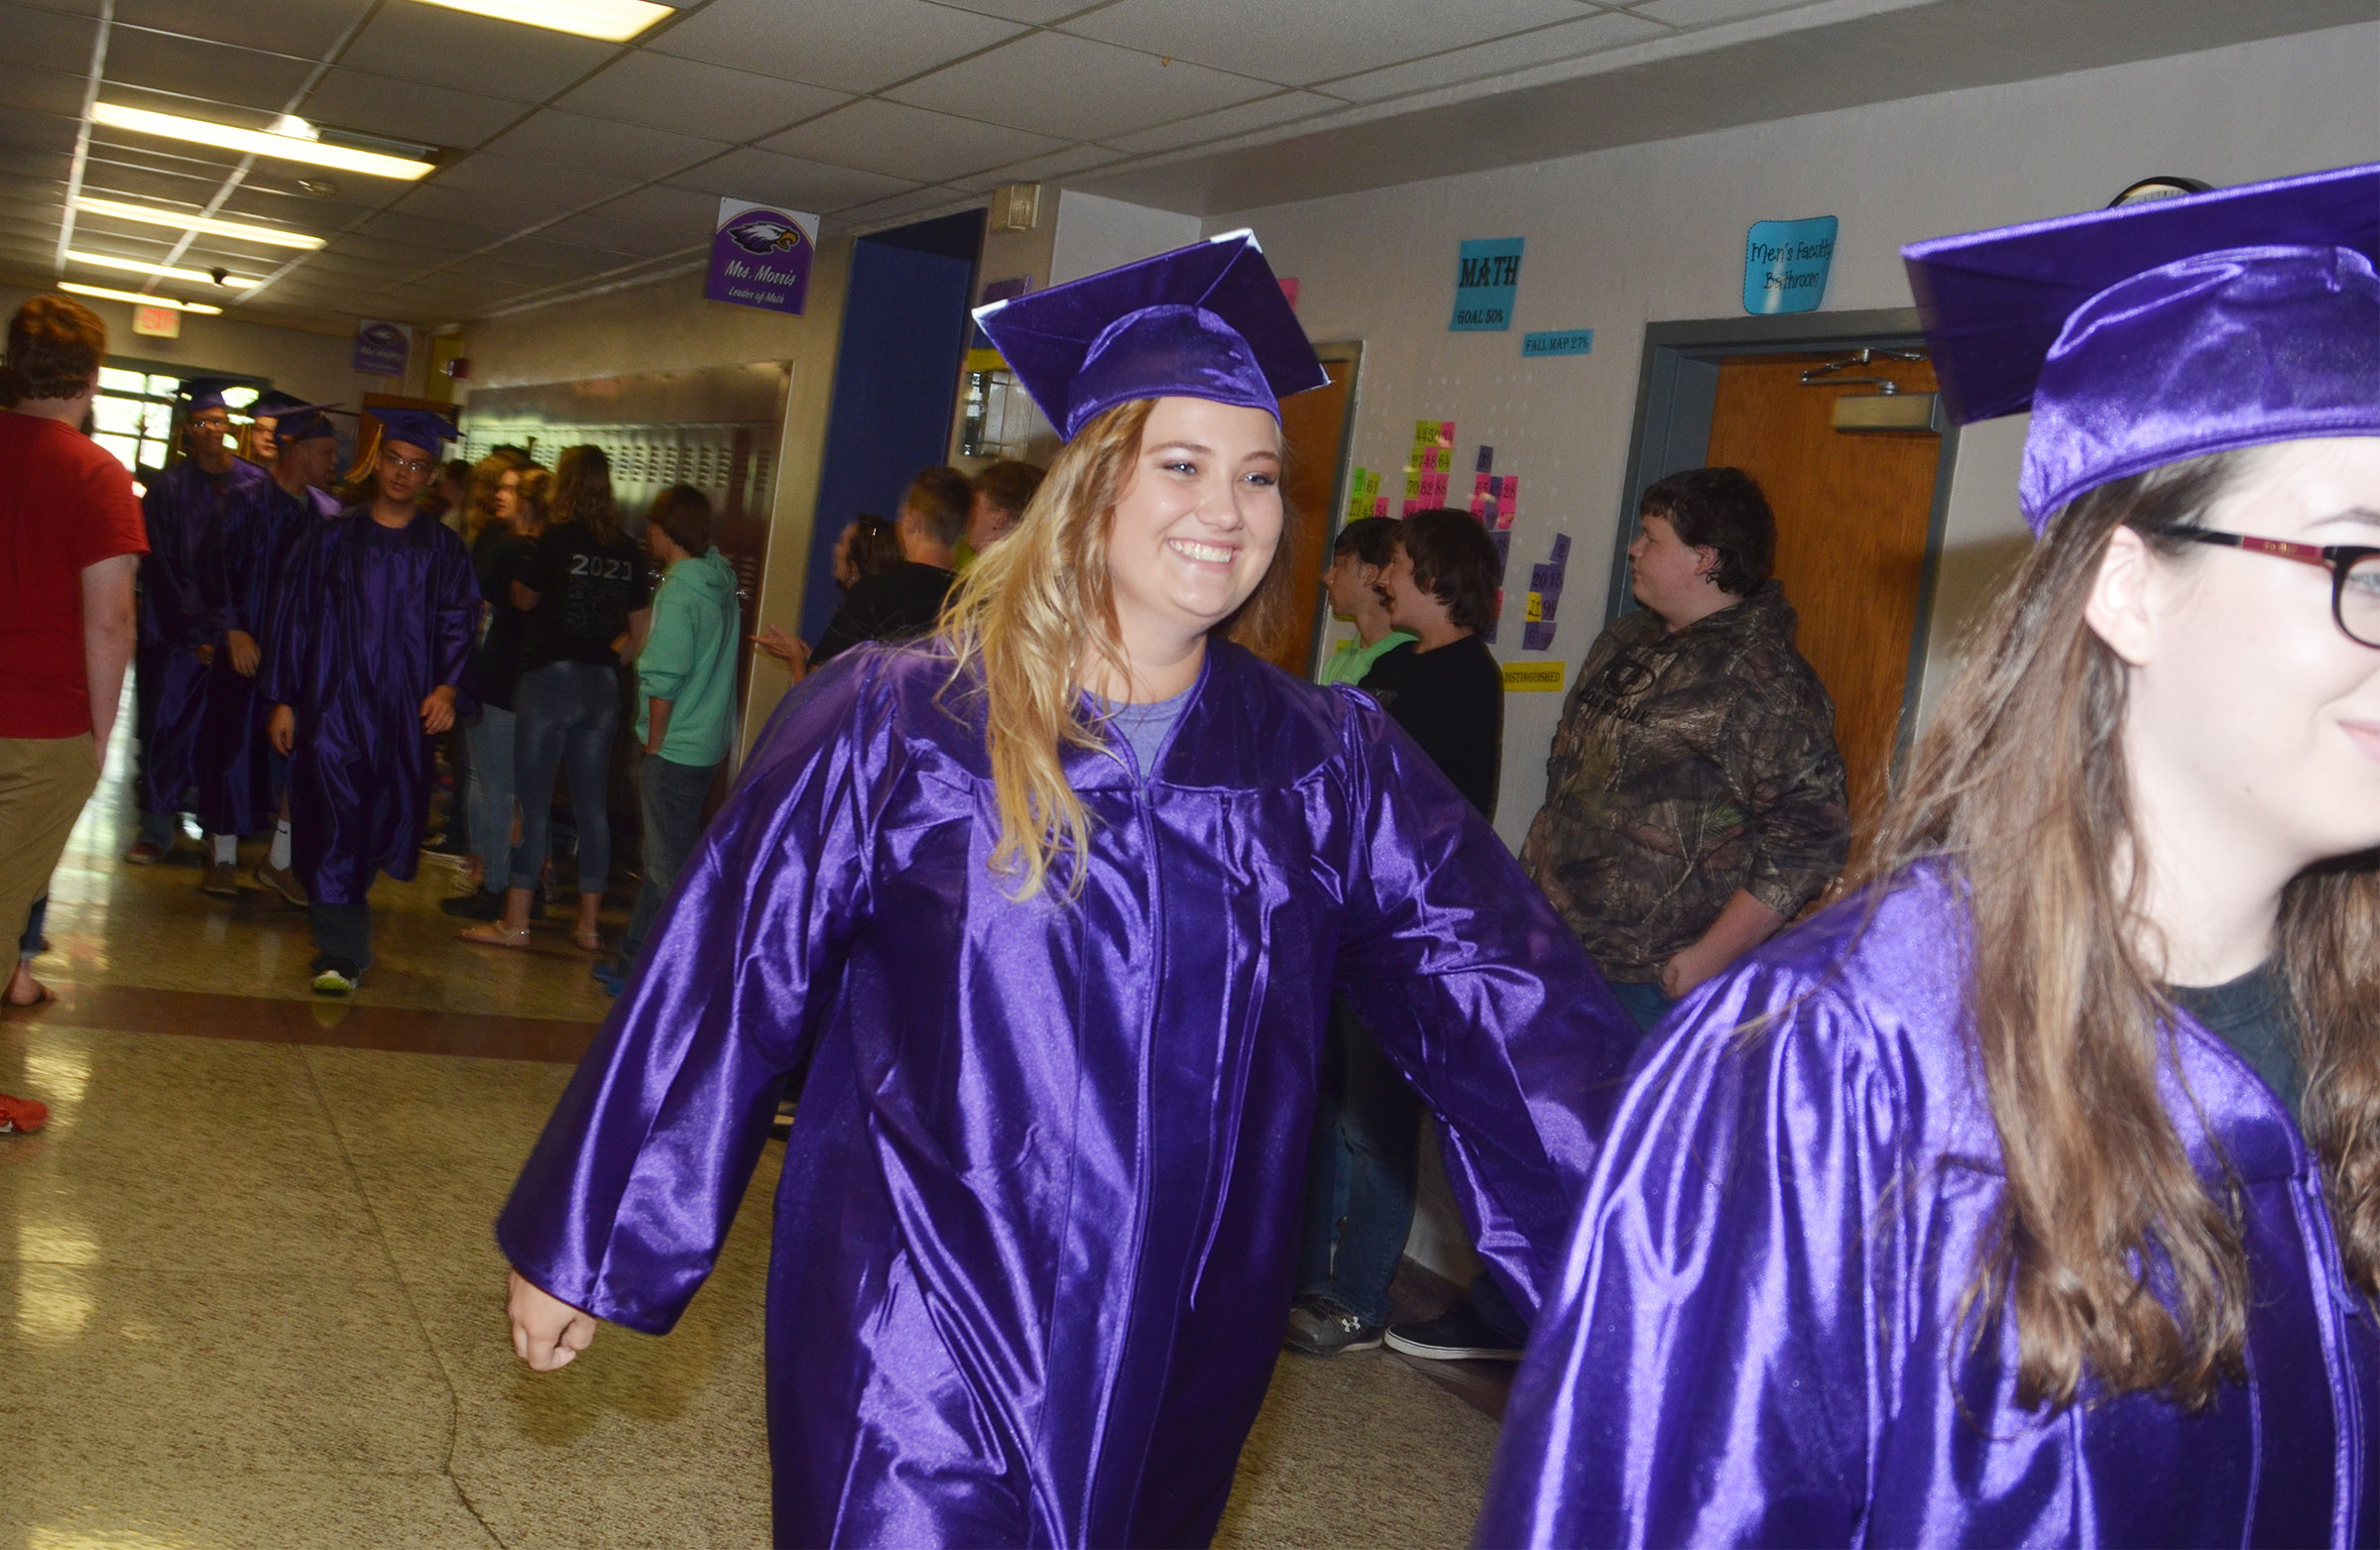 CHS senior Brenna Wethington smiles as she walks down the CMS hallways with her classmates.